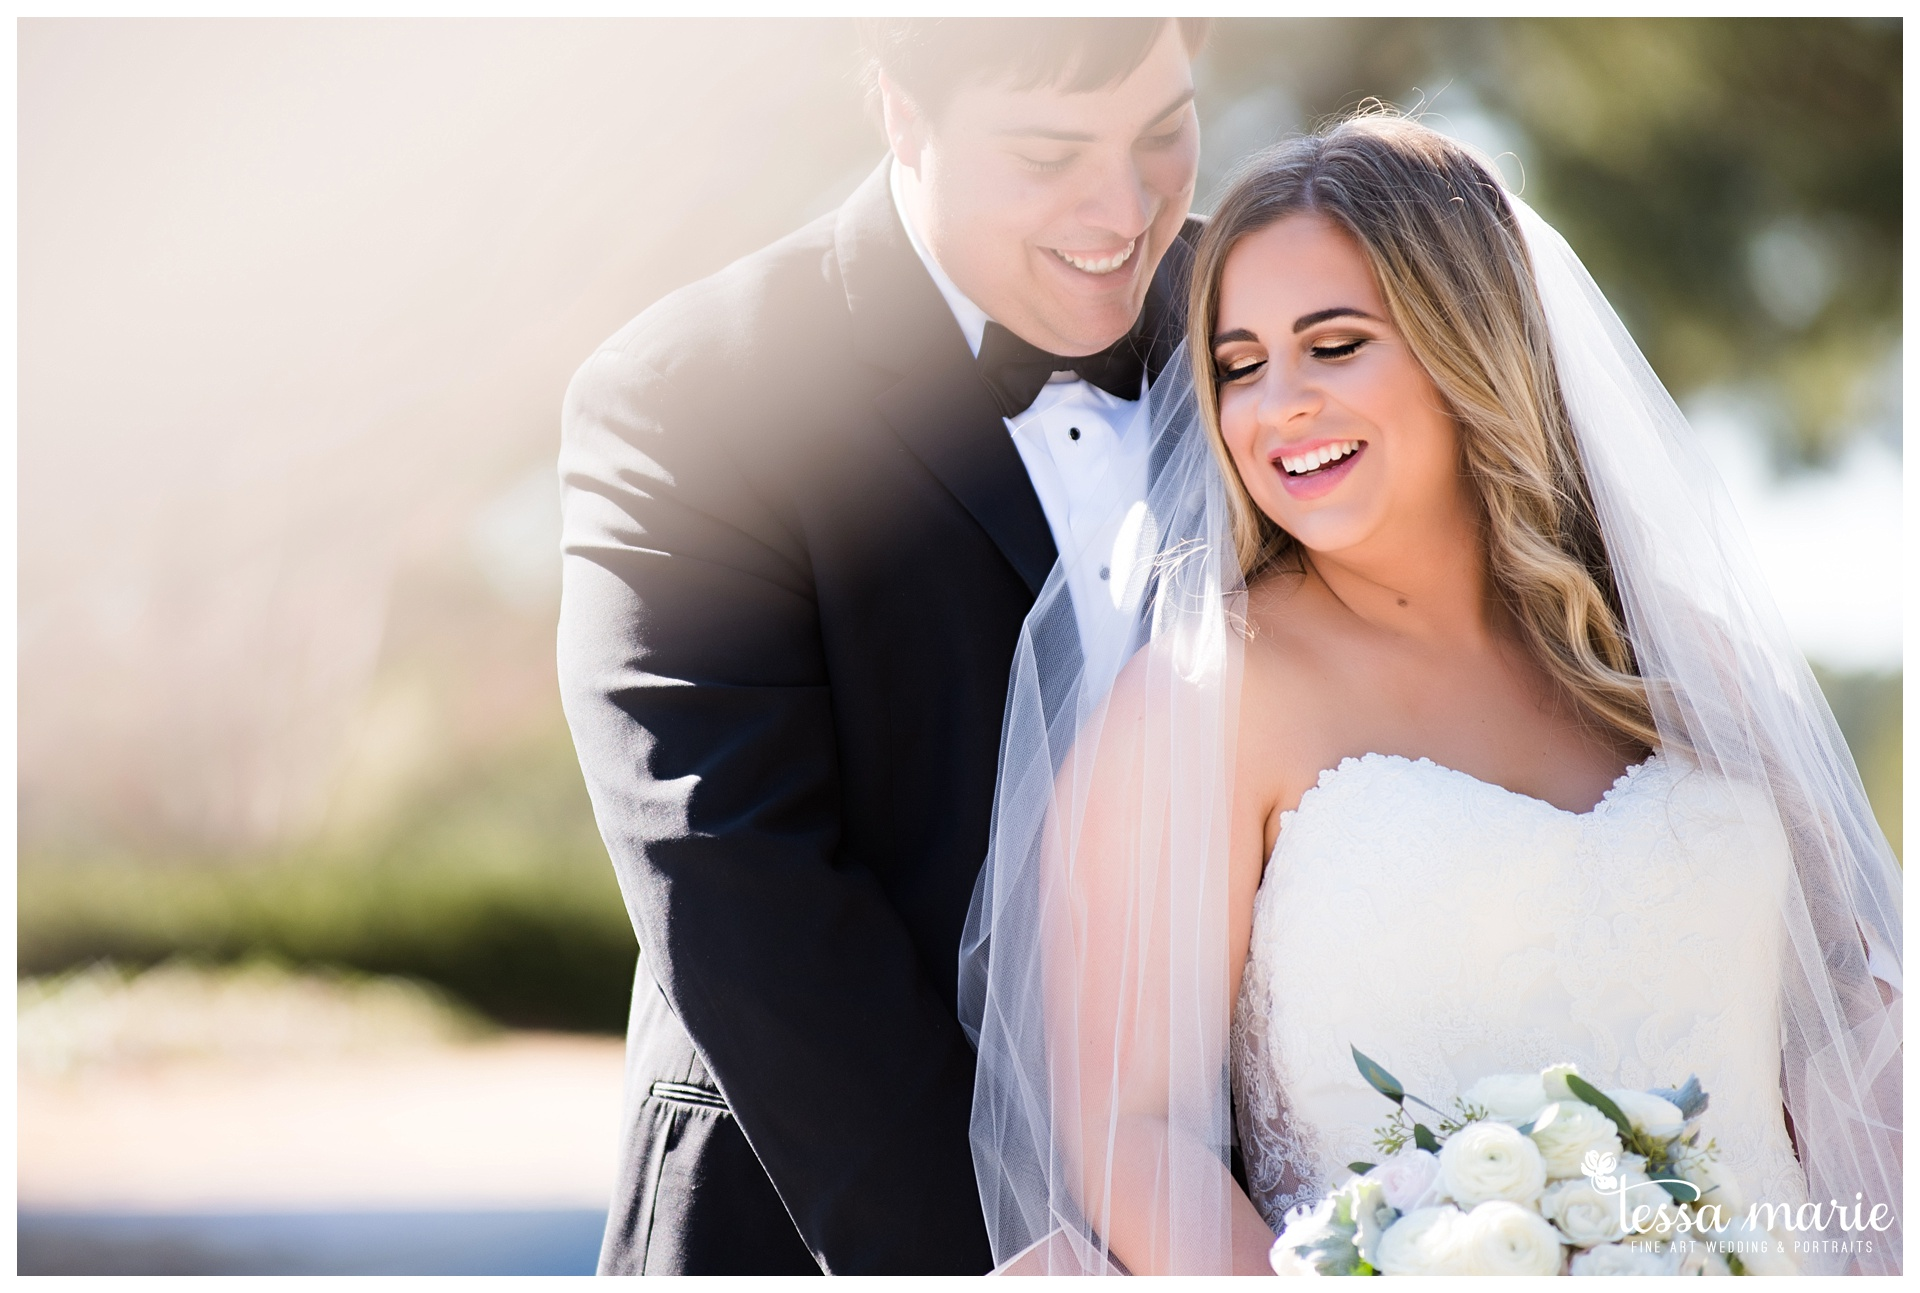 tessa_marie_weddings_legacy_story_focused_wedding_pictures_atlanta_wedding_photographer_0093